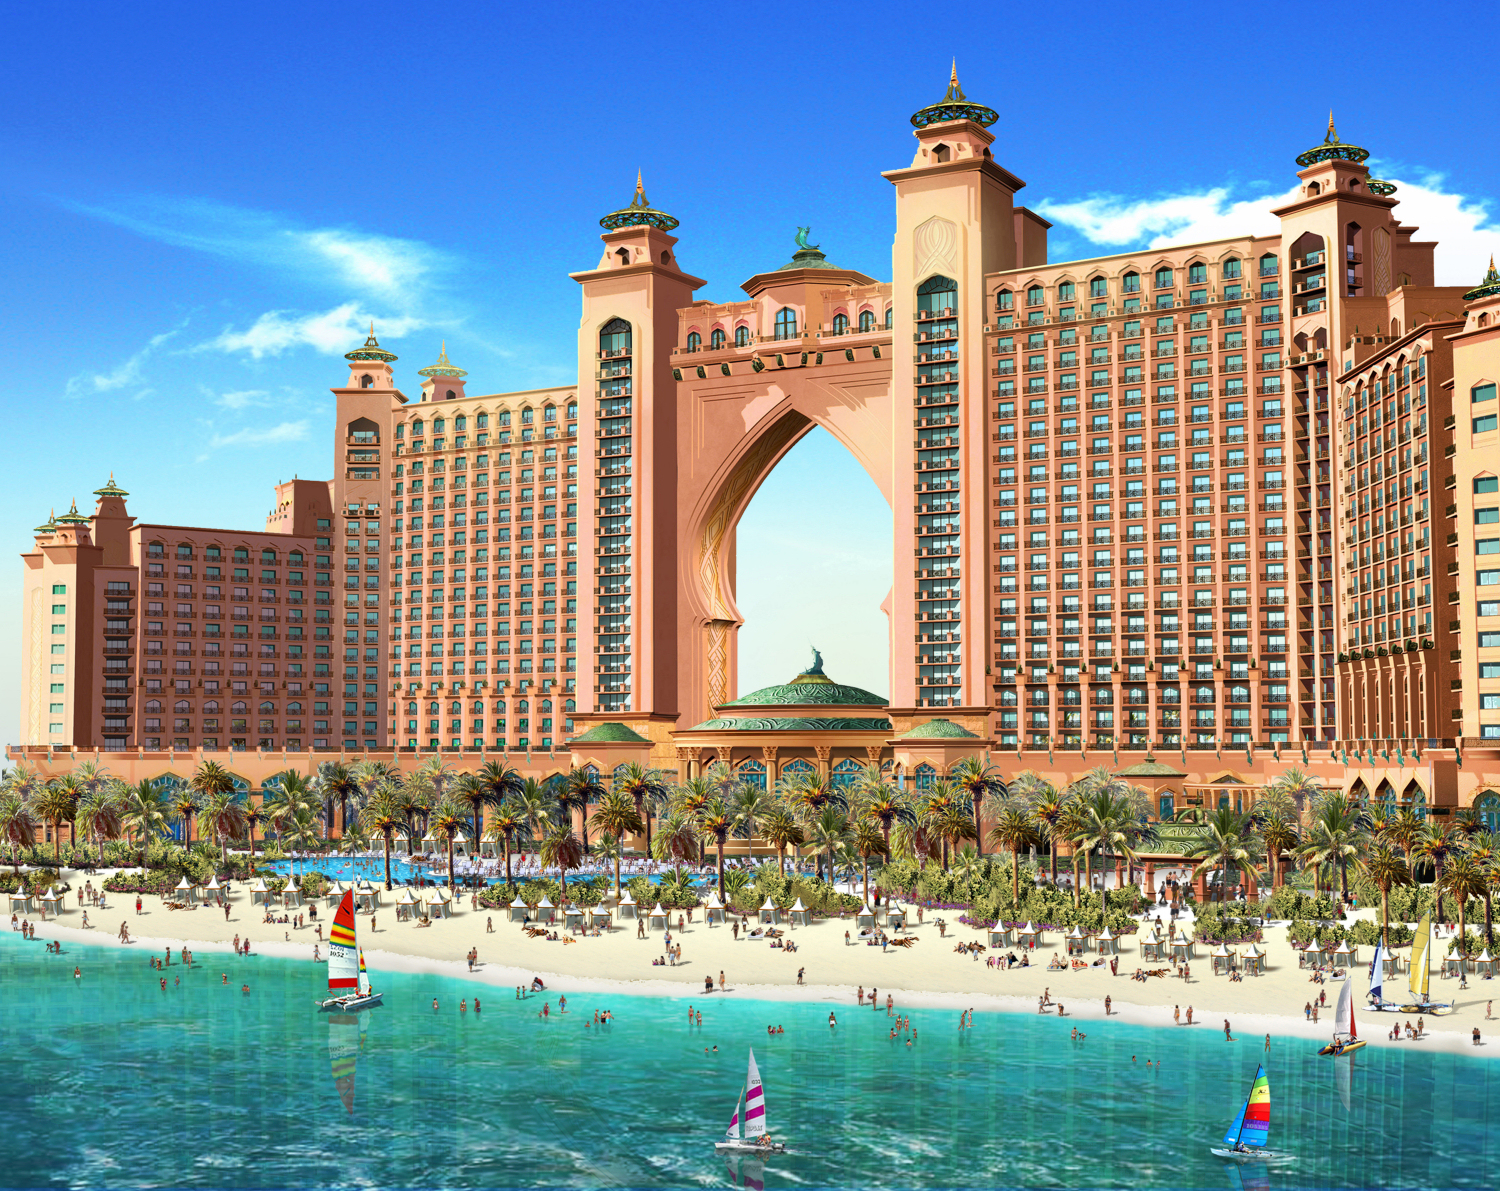 Hotel Atlantis In The Bahamas Luxury Life Design The World Most Beautiful Hotels